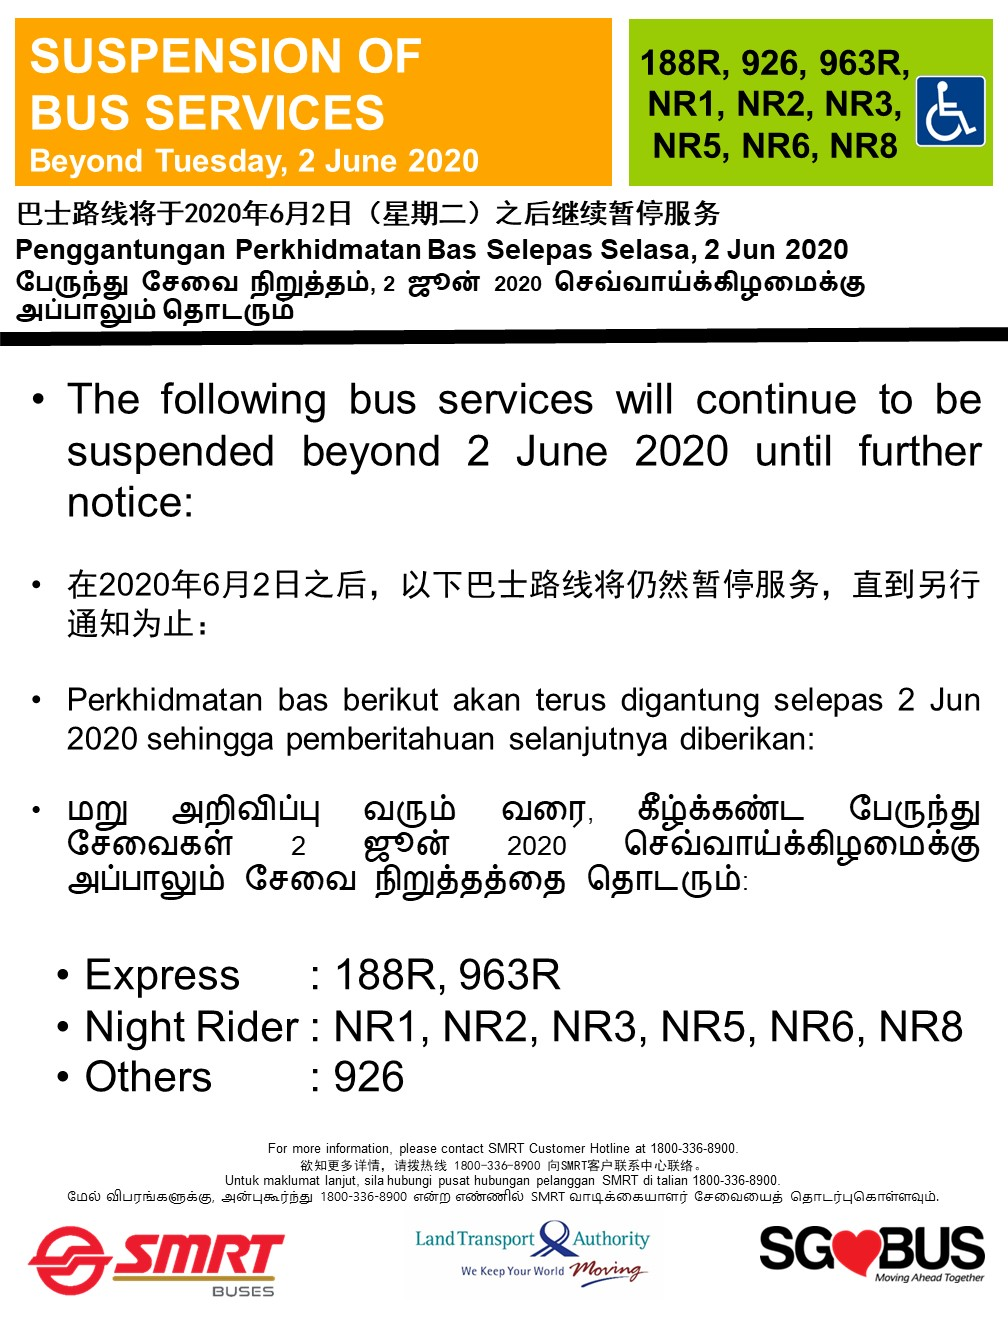 Official announcement from SMRT Buses on temporary suspension of selected bus services until further notice.